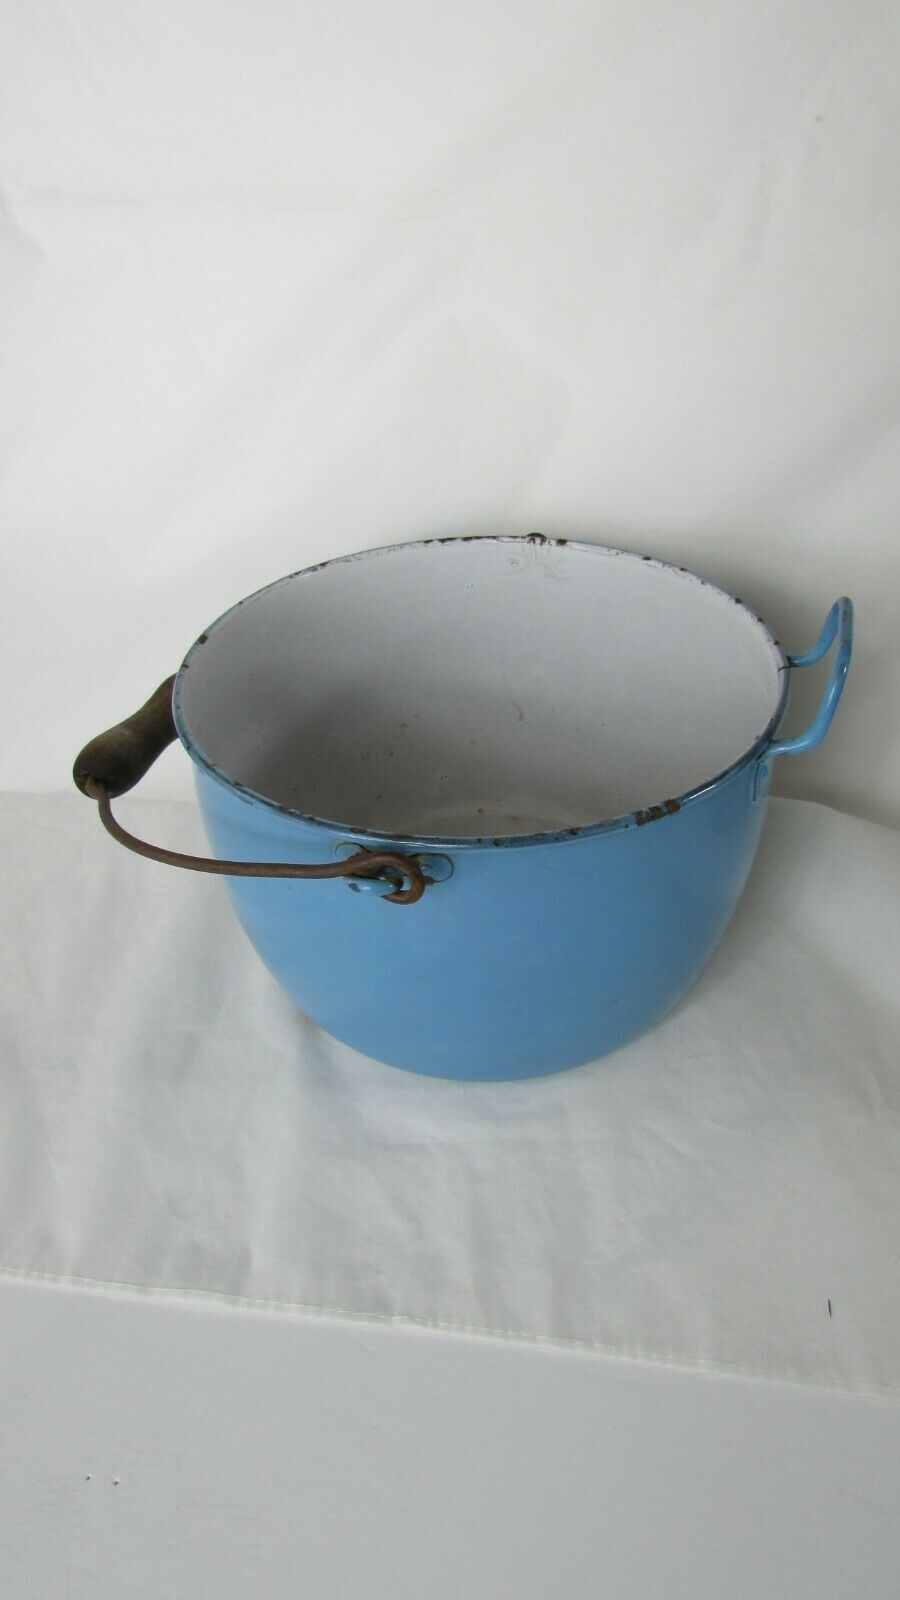 Vintage Enamel  Pail Bucket Blue and White Enamelware With Wooden Handle image 4